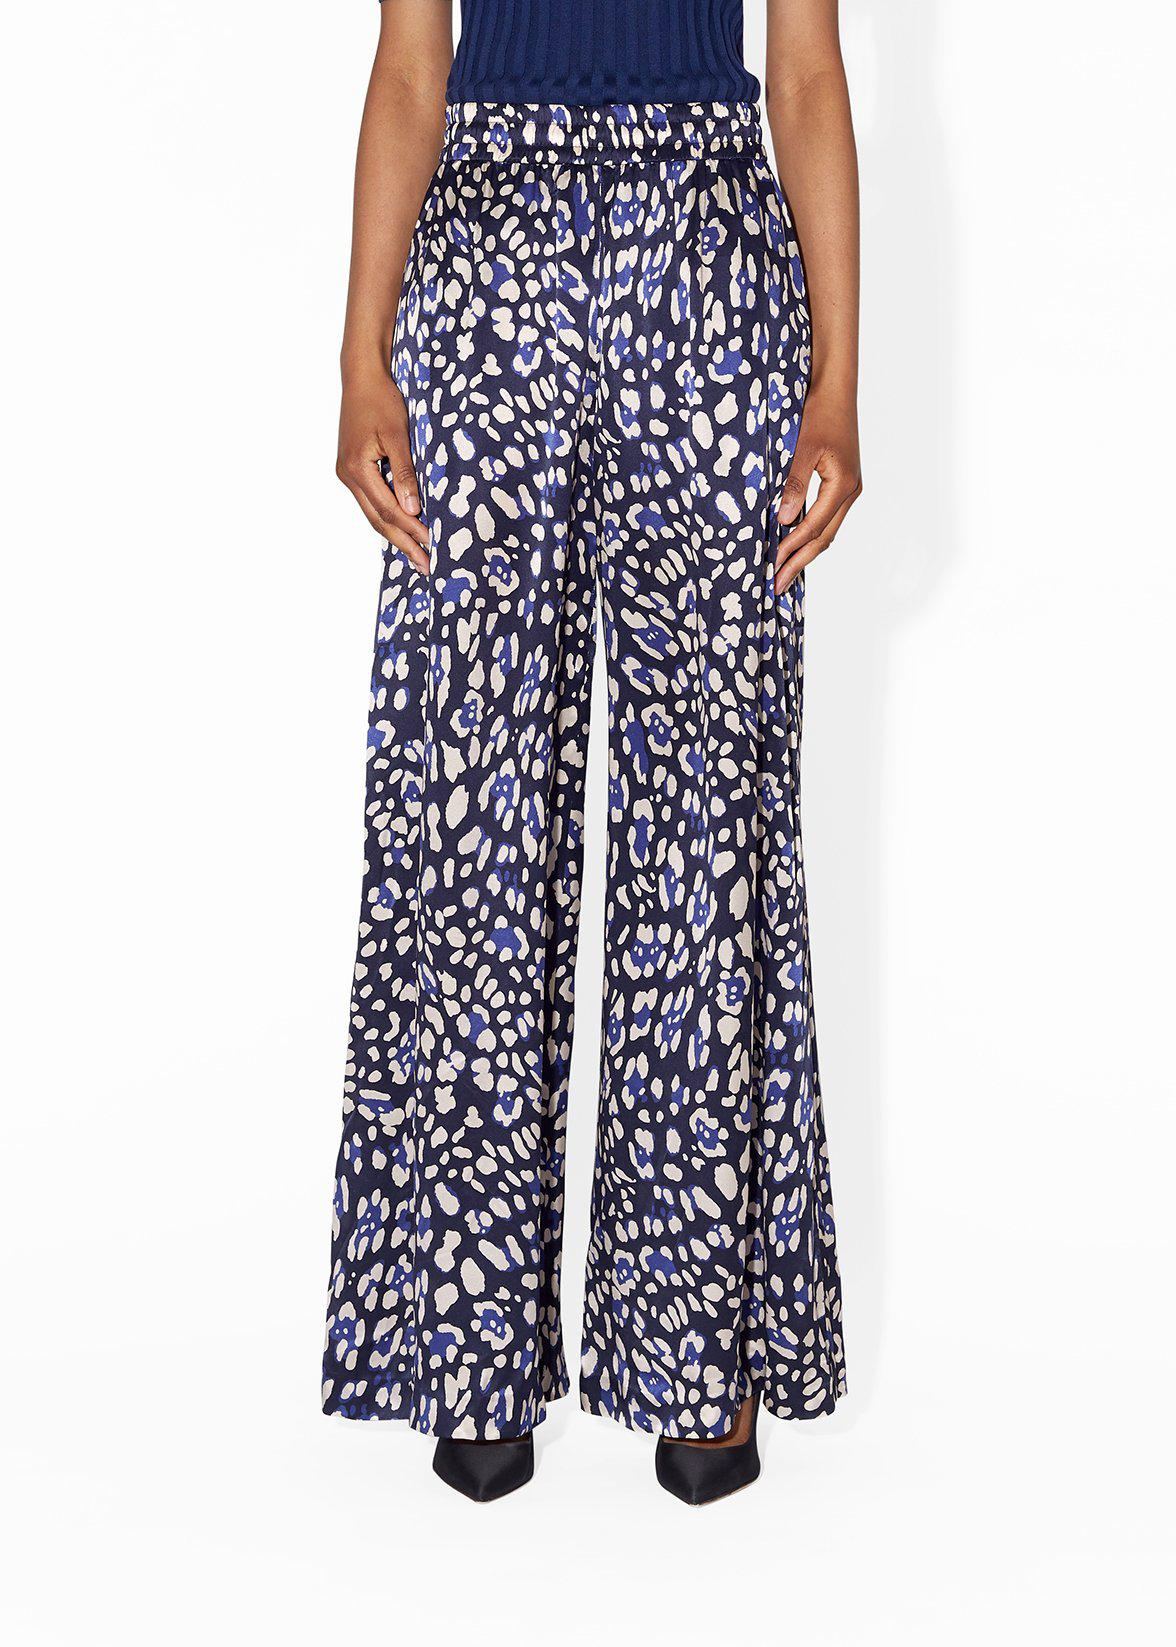 WIDE-LEG PANT IN PRINTED CHARMEUSE 3